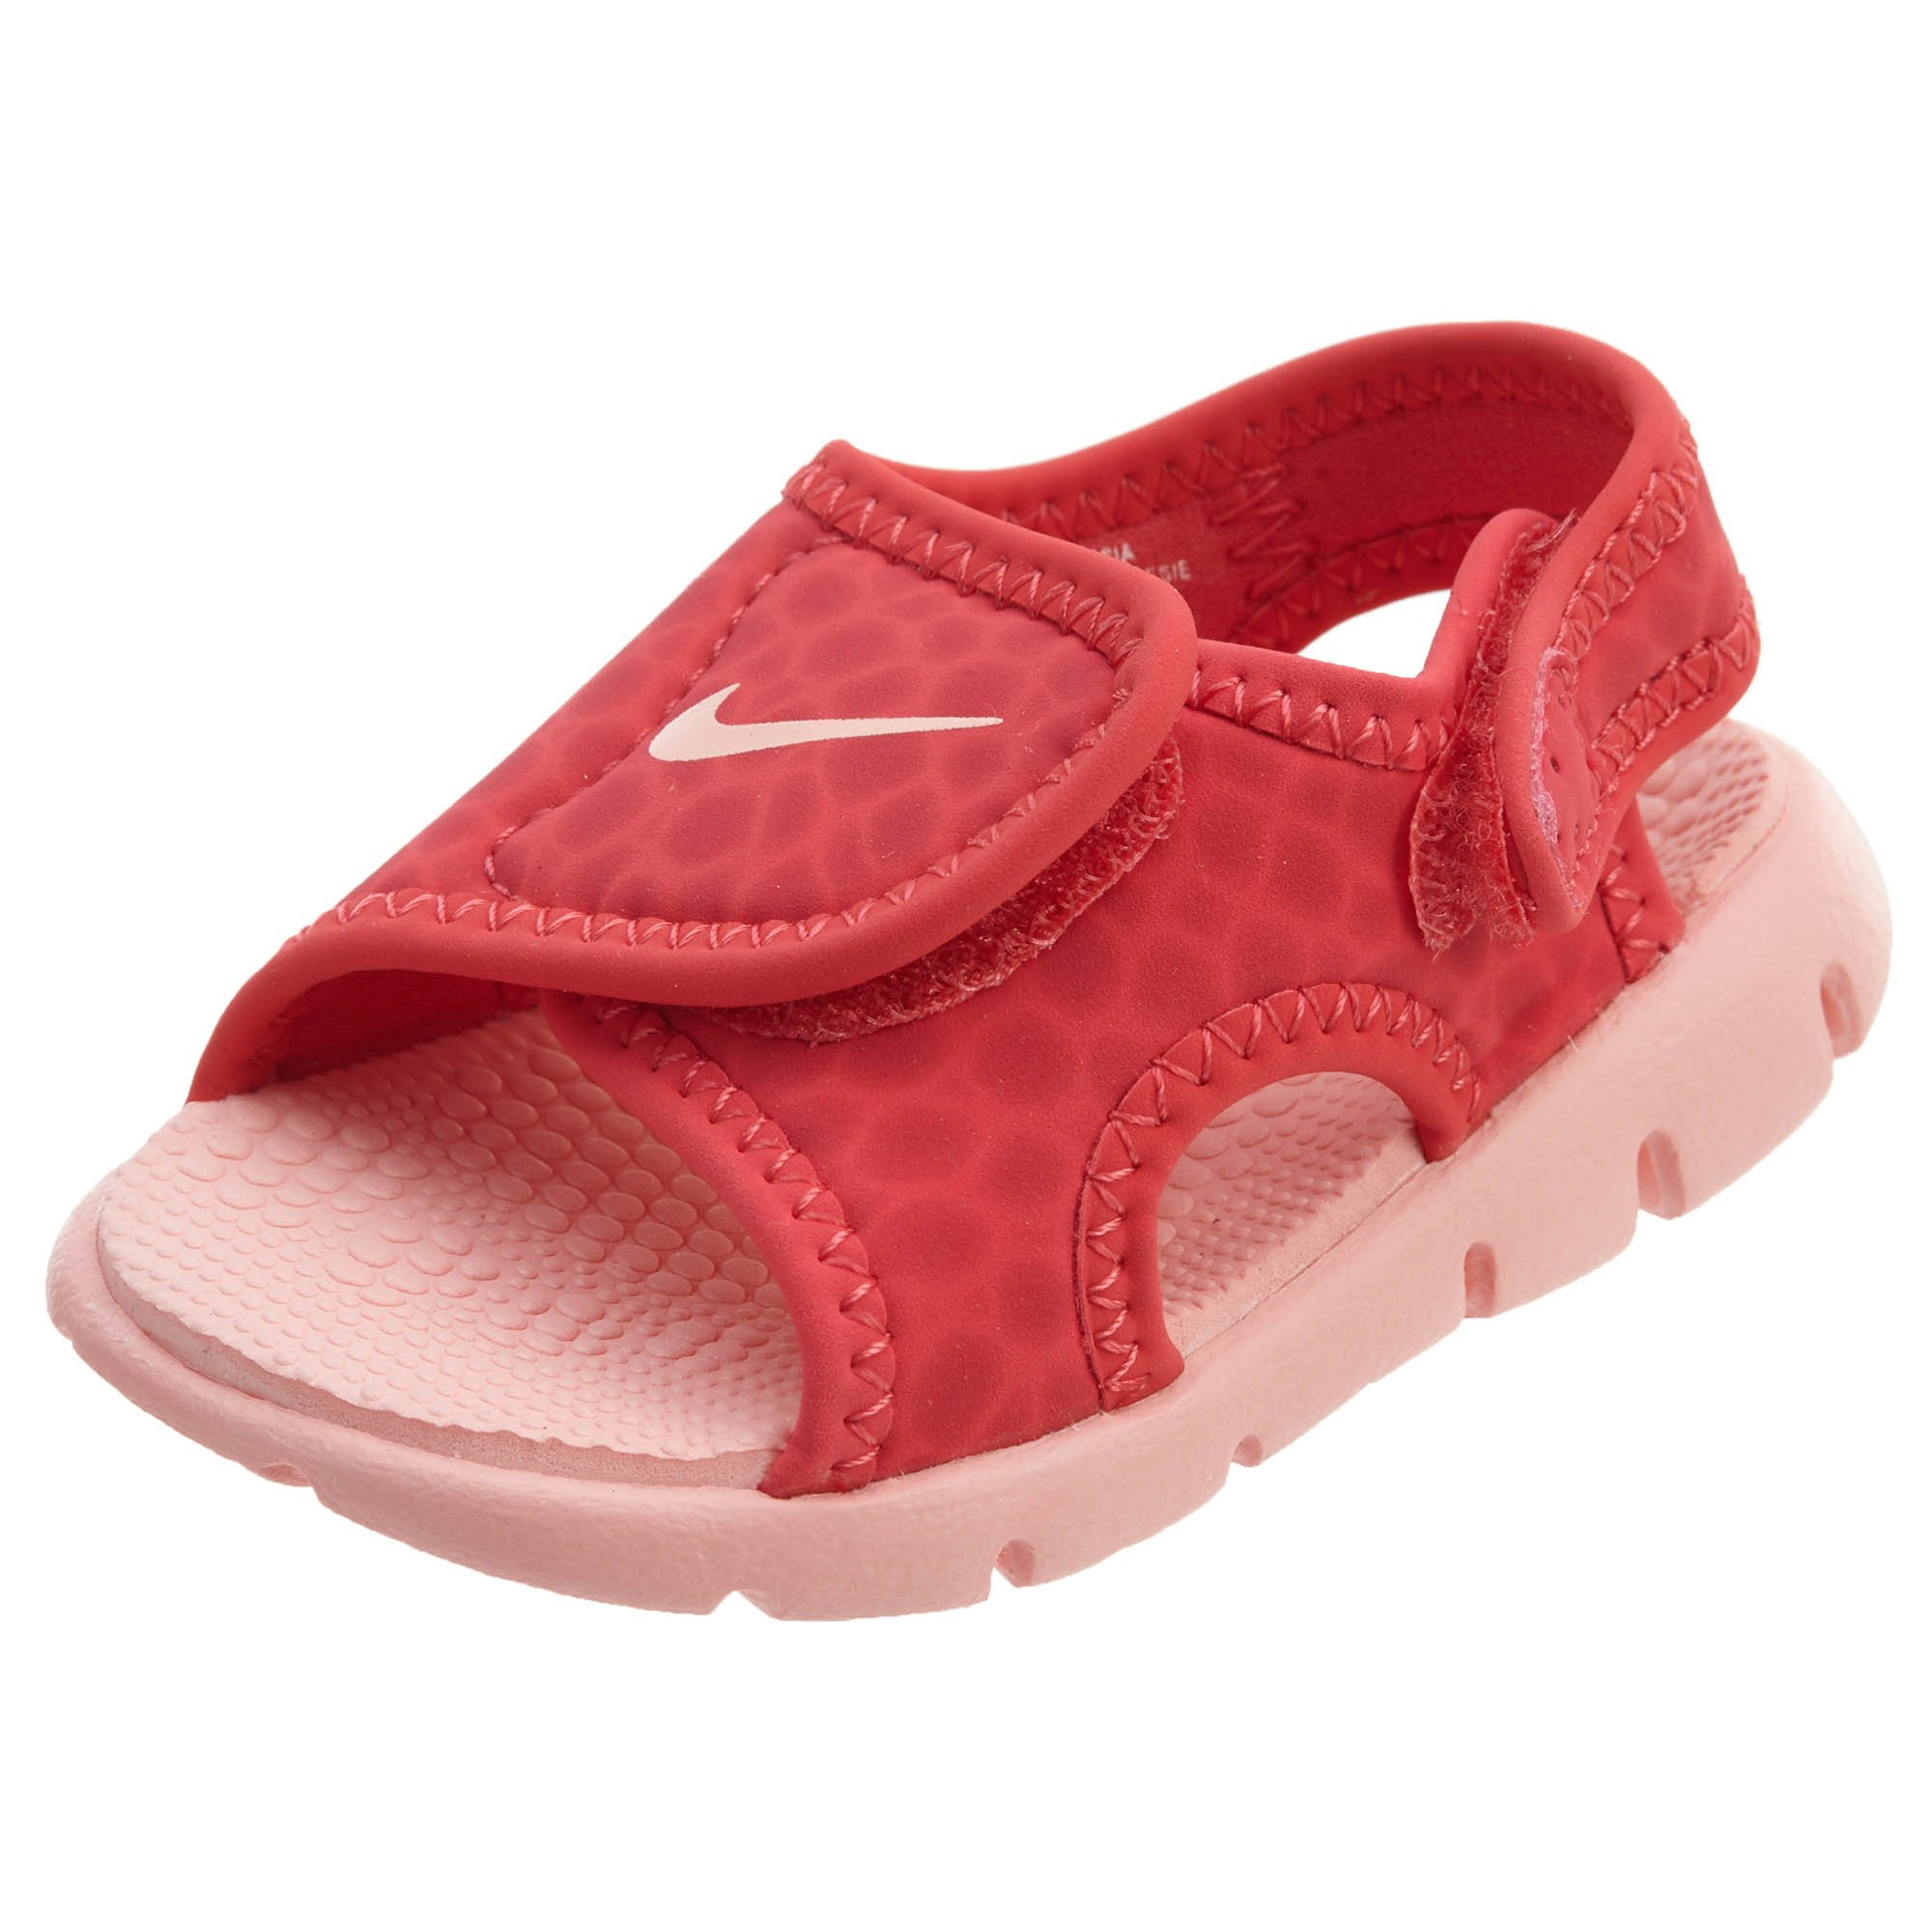 3758433b9da3 Galleon - NIKE Sunray Adjust 4 (TD) Baby-Boys Slippers 386521-608 5C -  Tropical Pink Bleached Coral